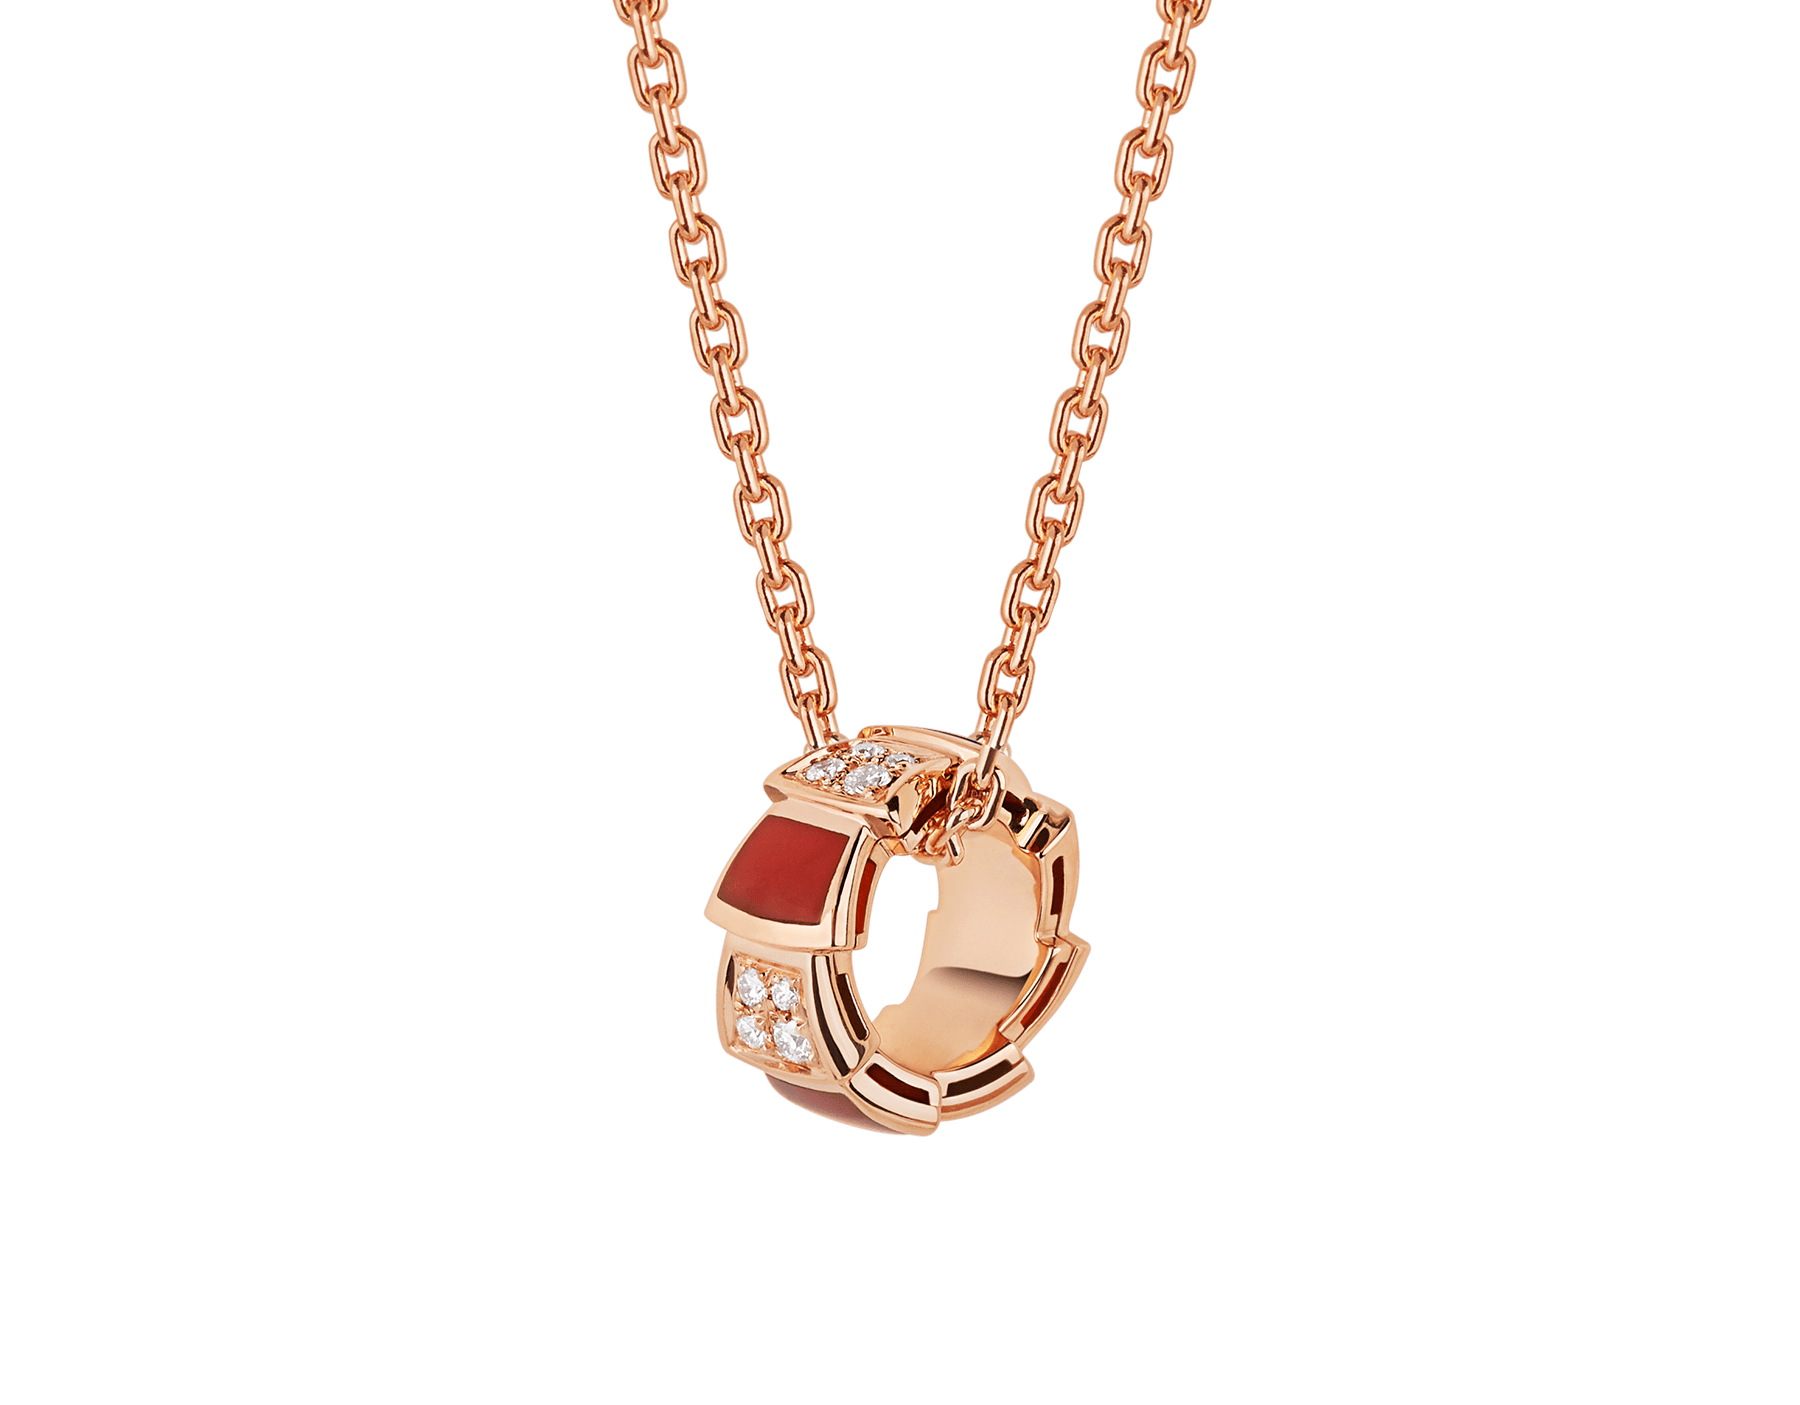 Serpenti Viper necklace with 18 kt rose gold chain and 18 kt rose gold pendant set with carnelian elements and demi pavé diamonds. 355088 image 1